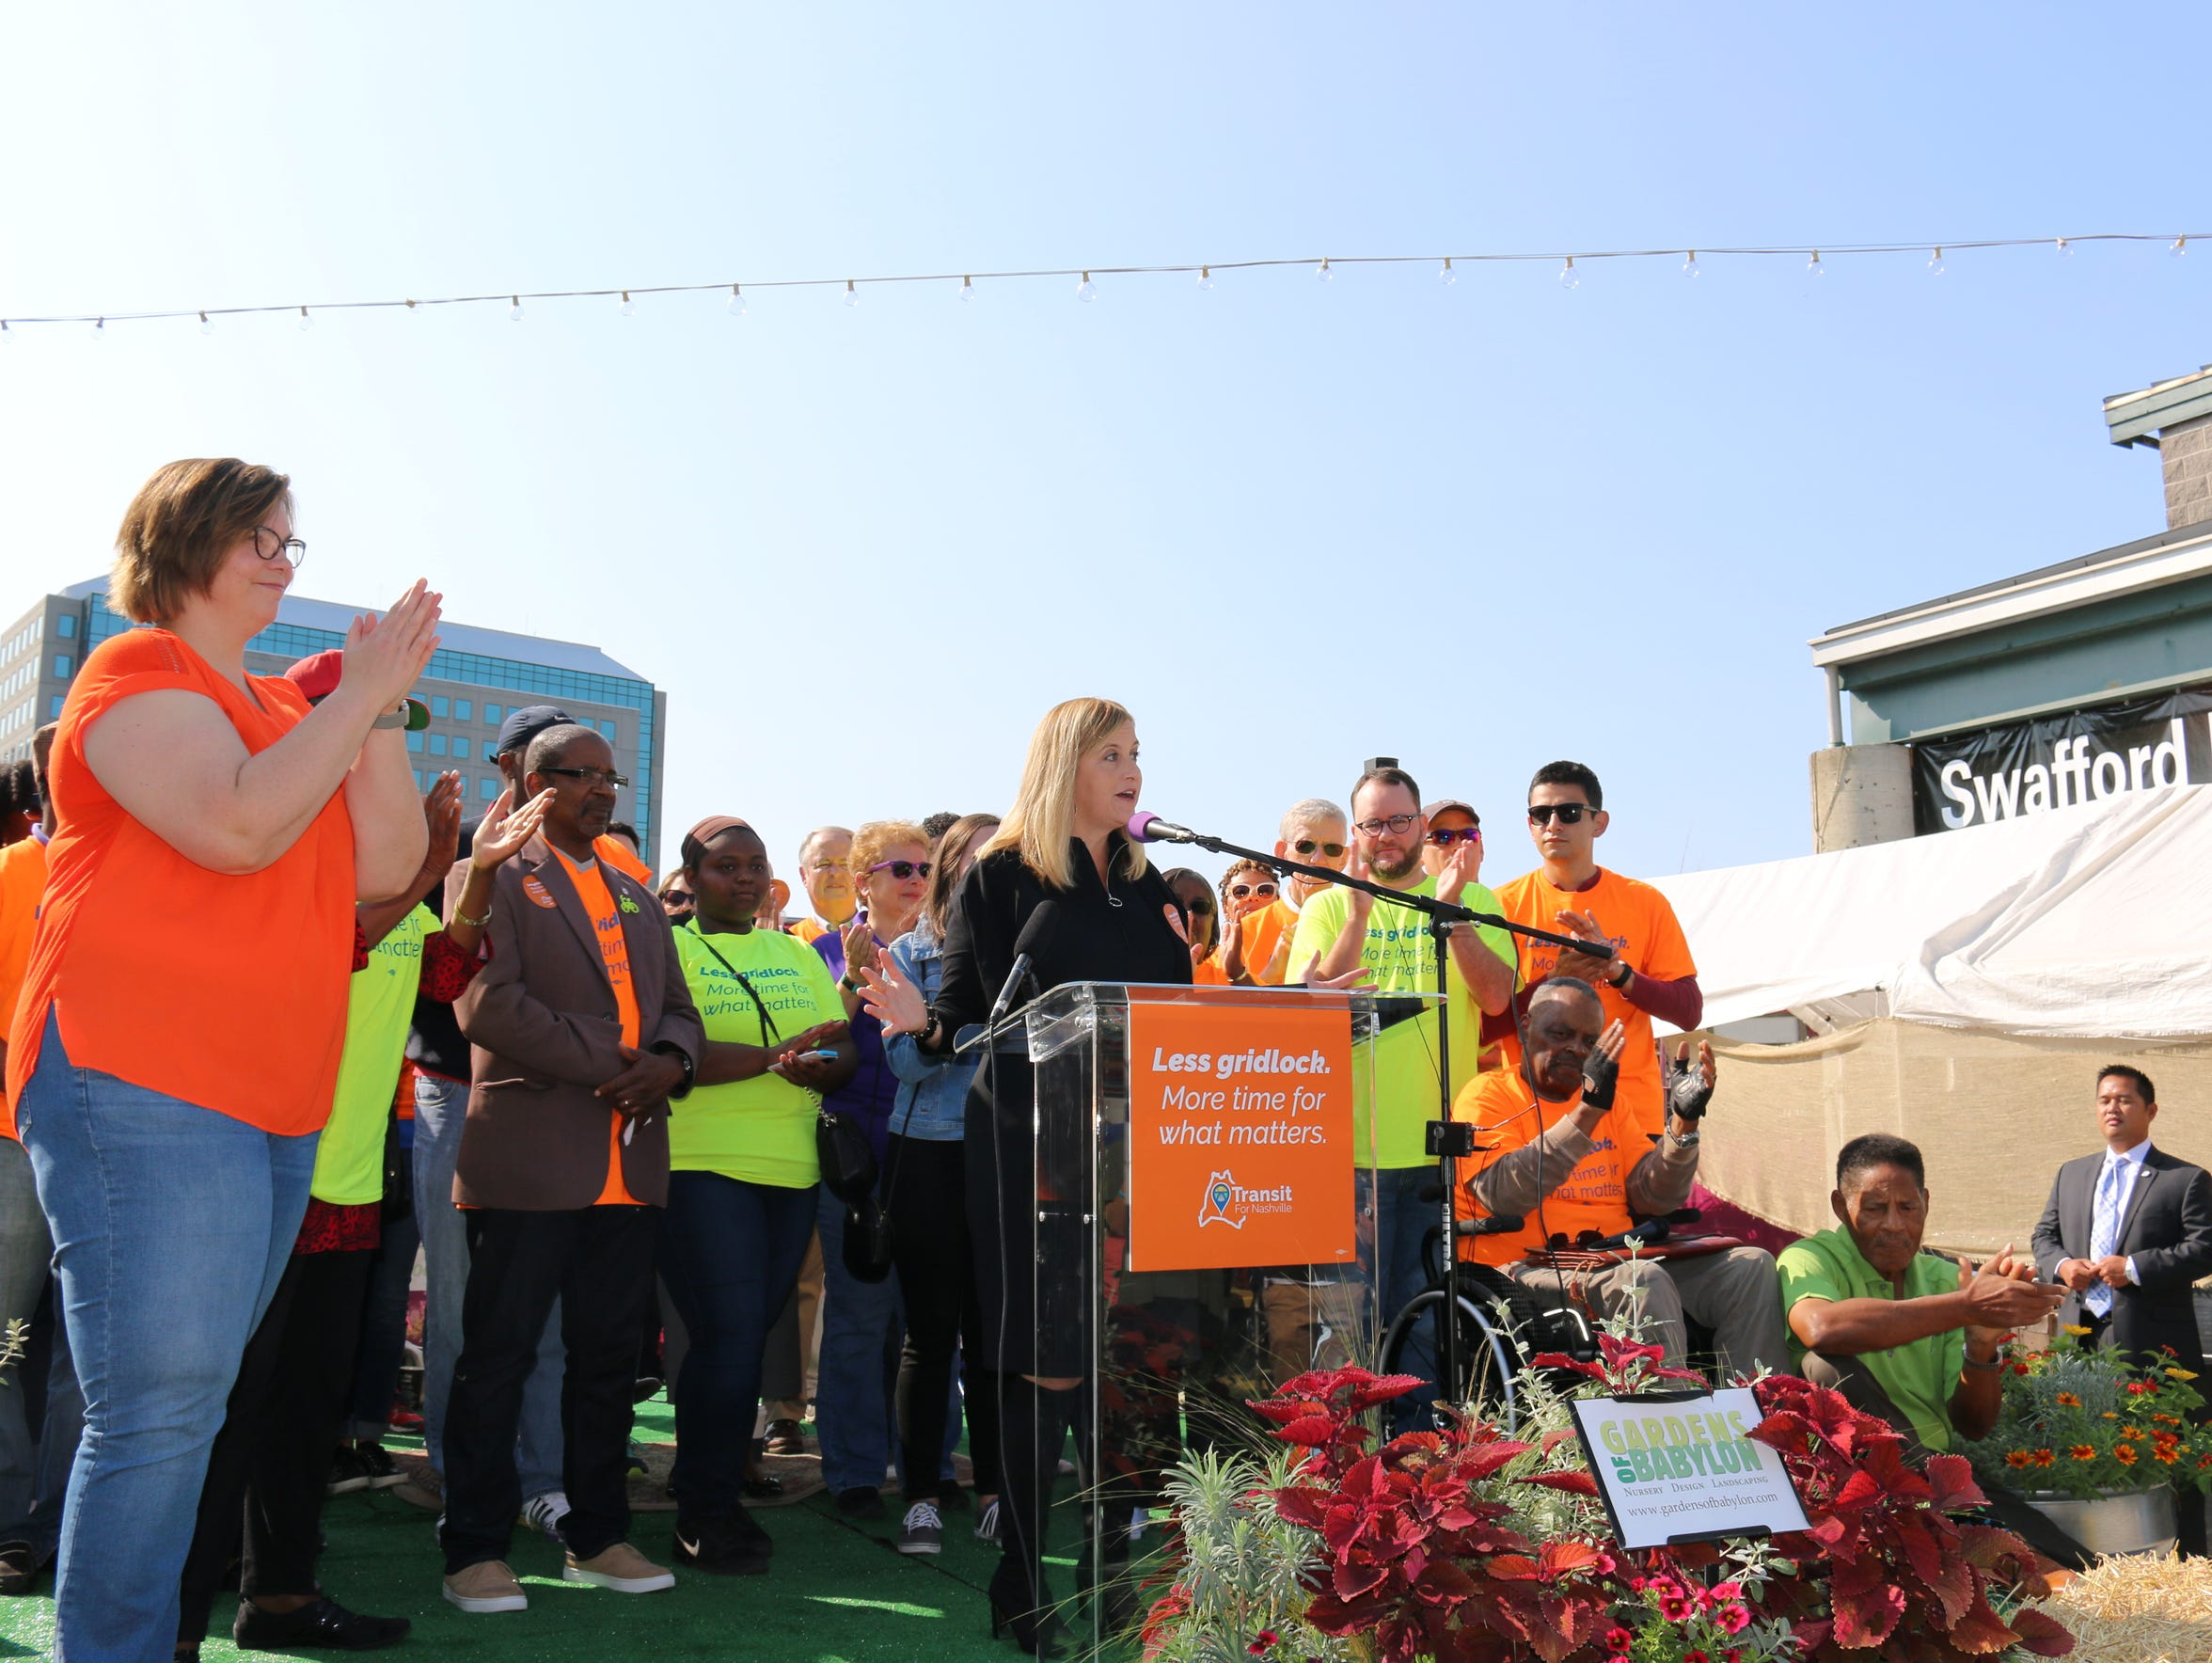 Nashville Mayor Megan Barry calls for residents to